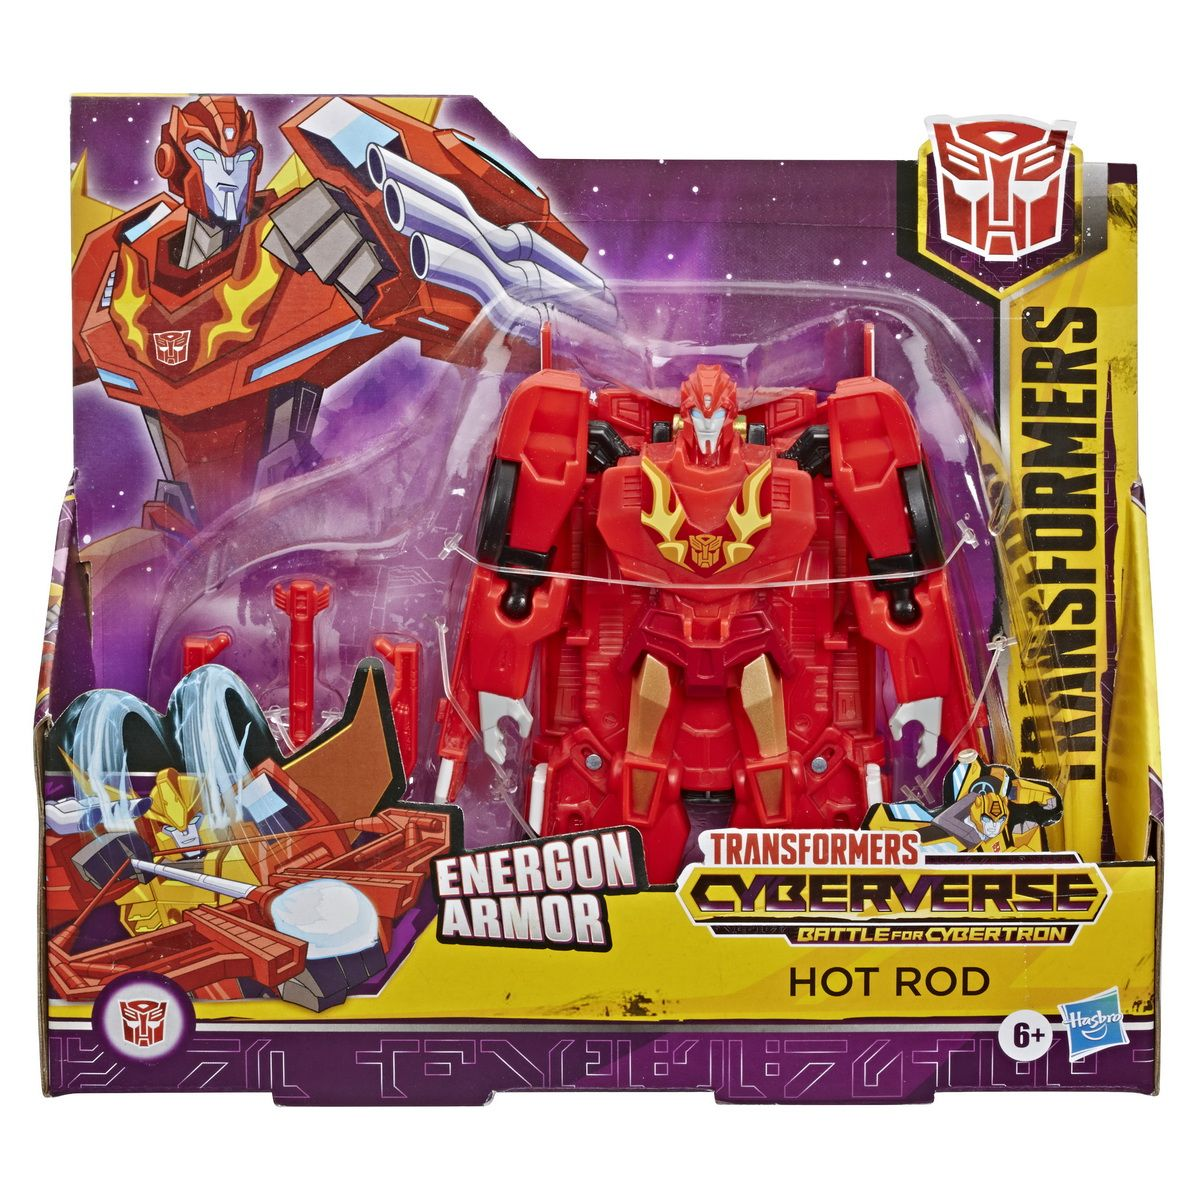 Figurina Transformers Cyberverse Action Attacker Ultra, Hot Rod E7107